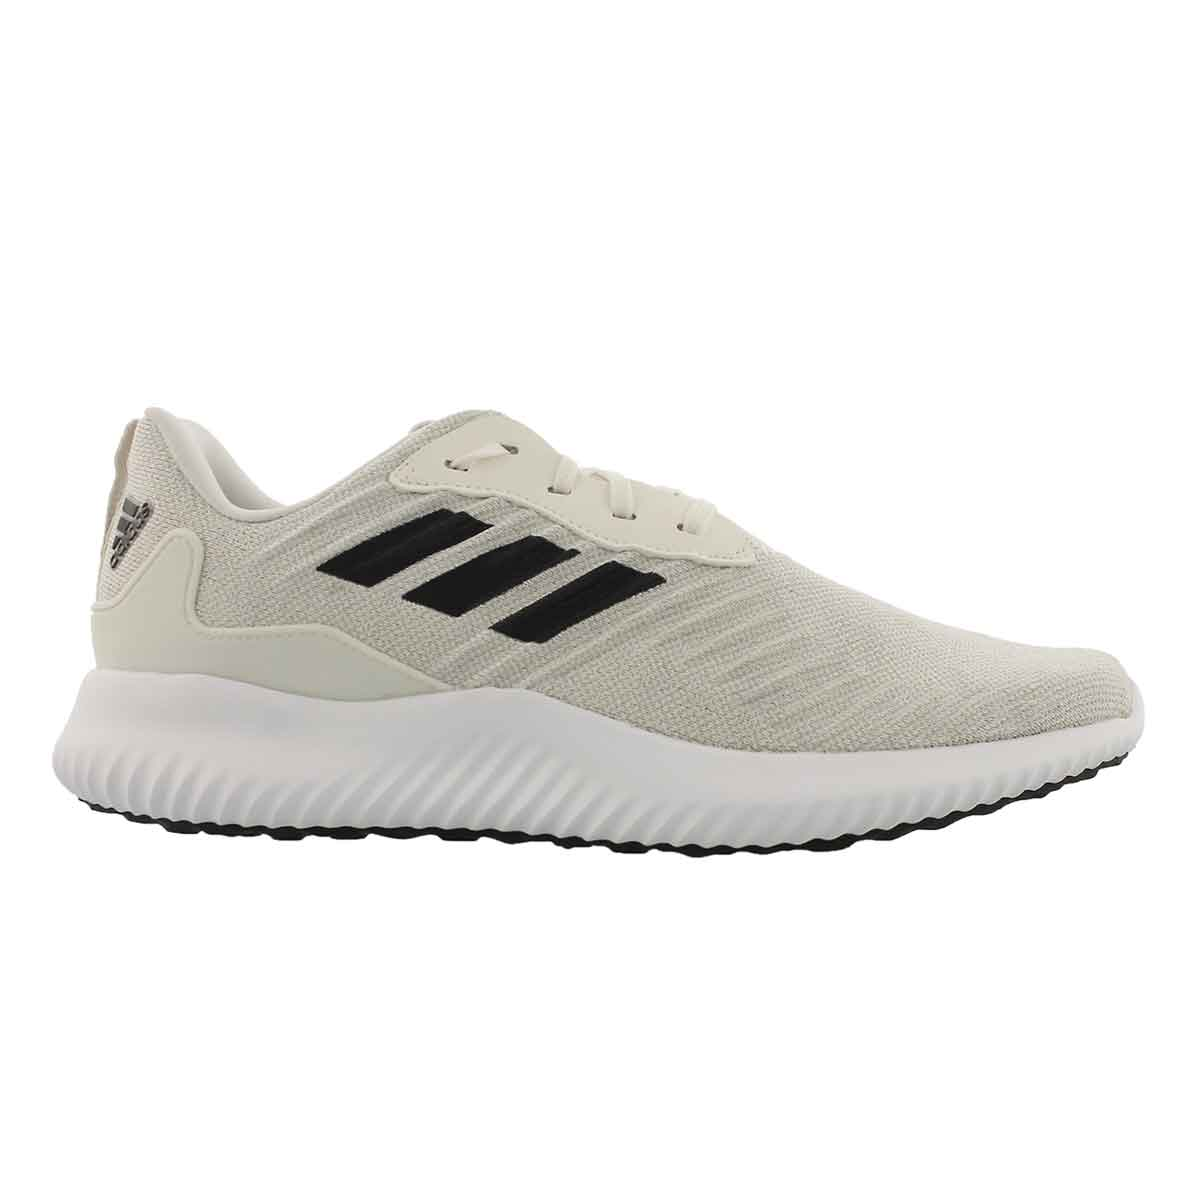 Mns Alphabounce RC wht/blk running shoe